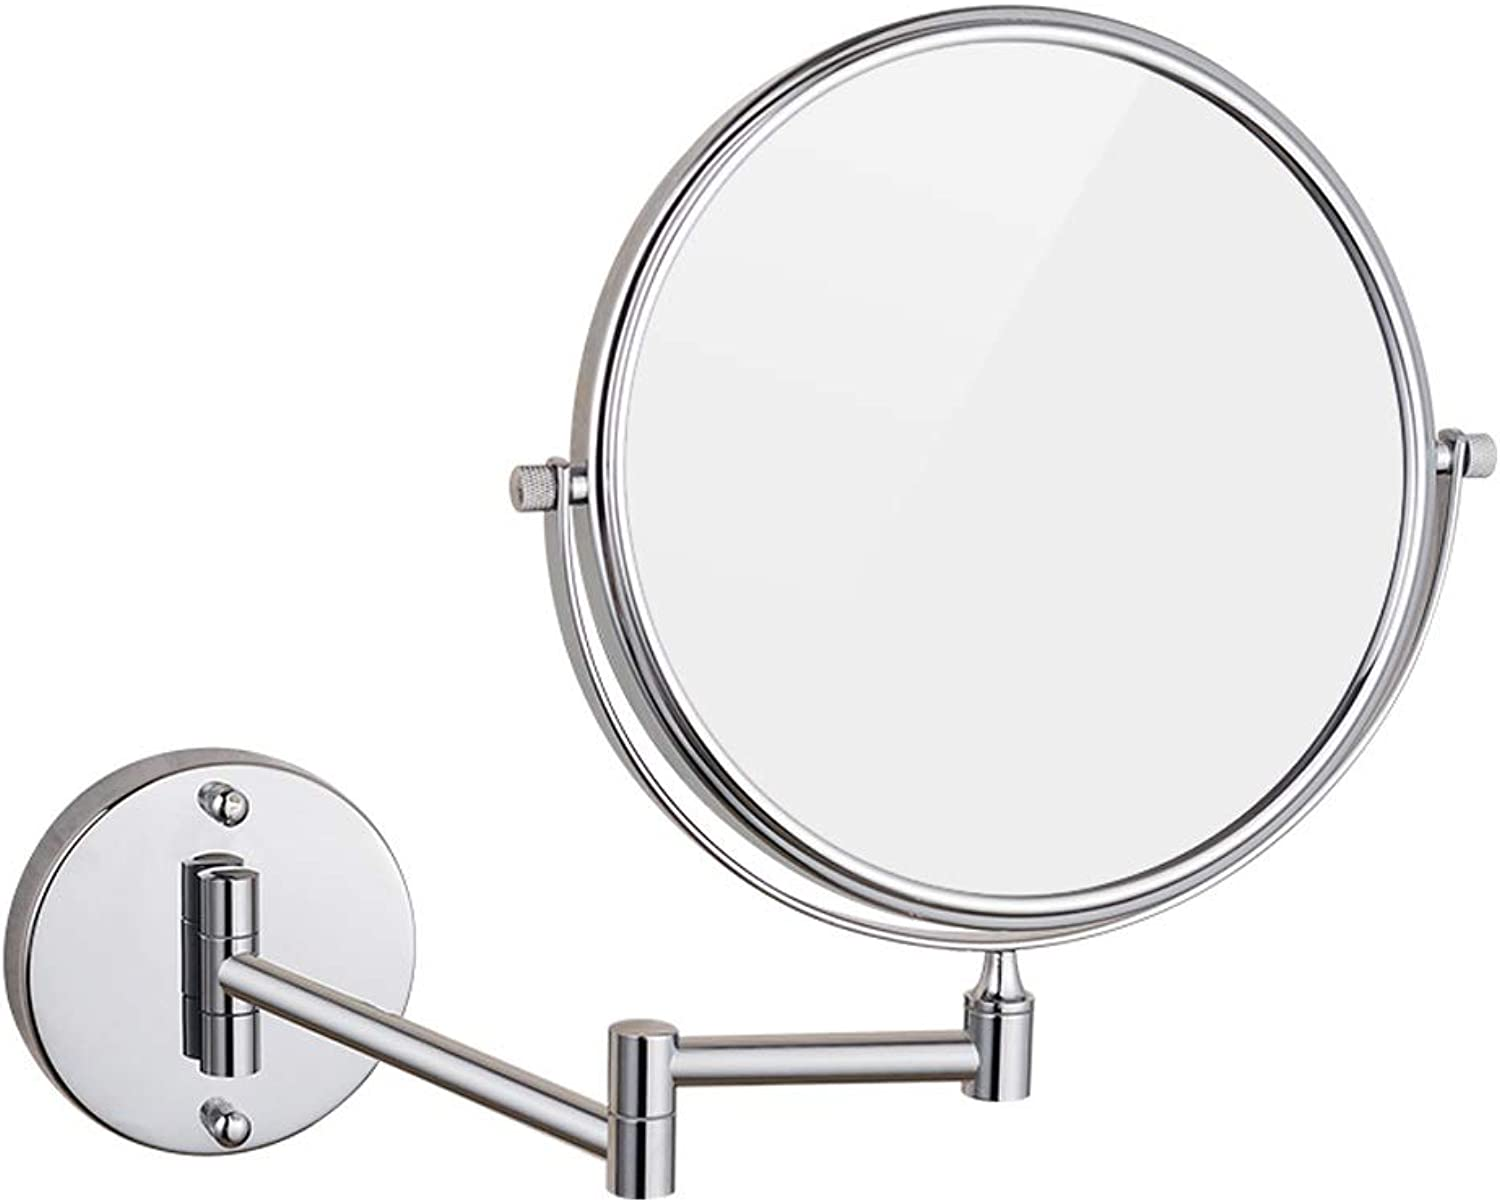 HELIn Bathroom Shaving Mirror 3X Magnification + Normal Double-Sided Round Wall Mounted Vanity Mirror Swivel, Extendable and Chrome Finished (Size   20cm)